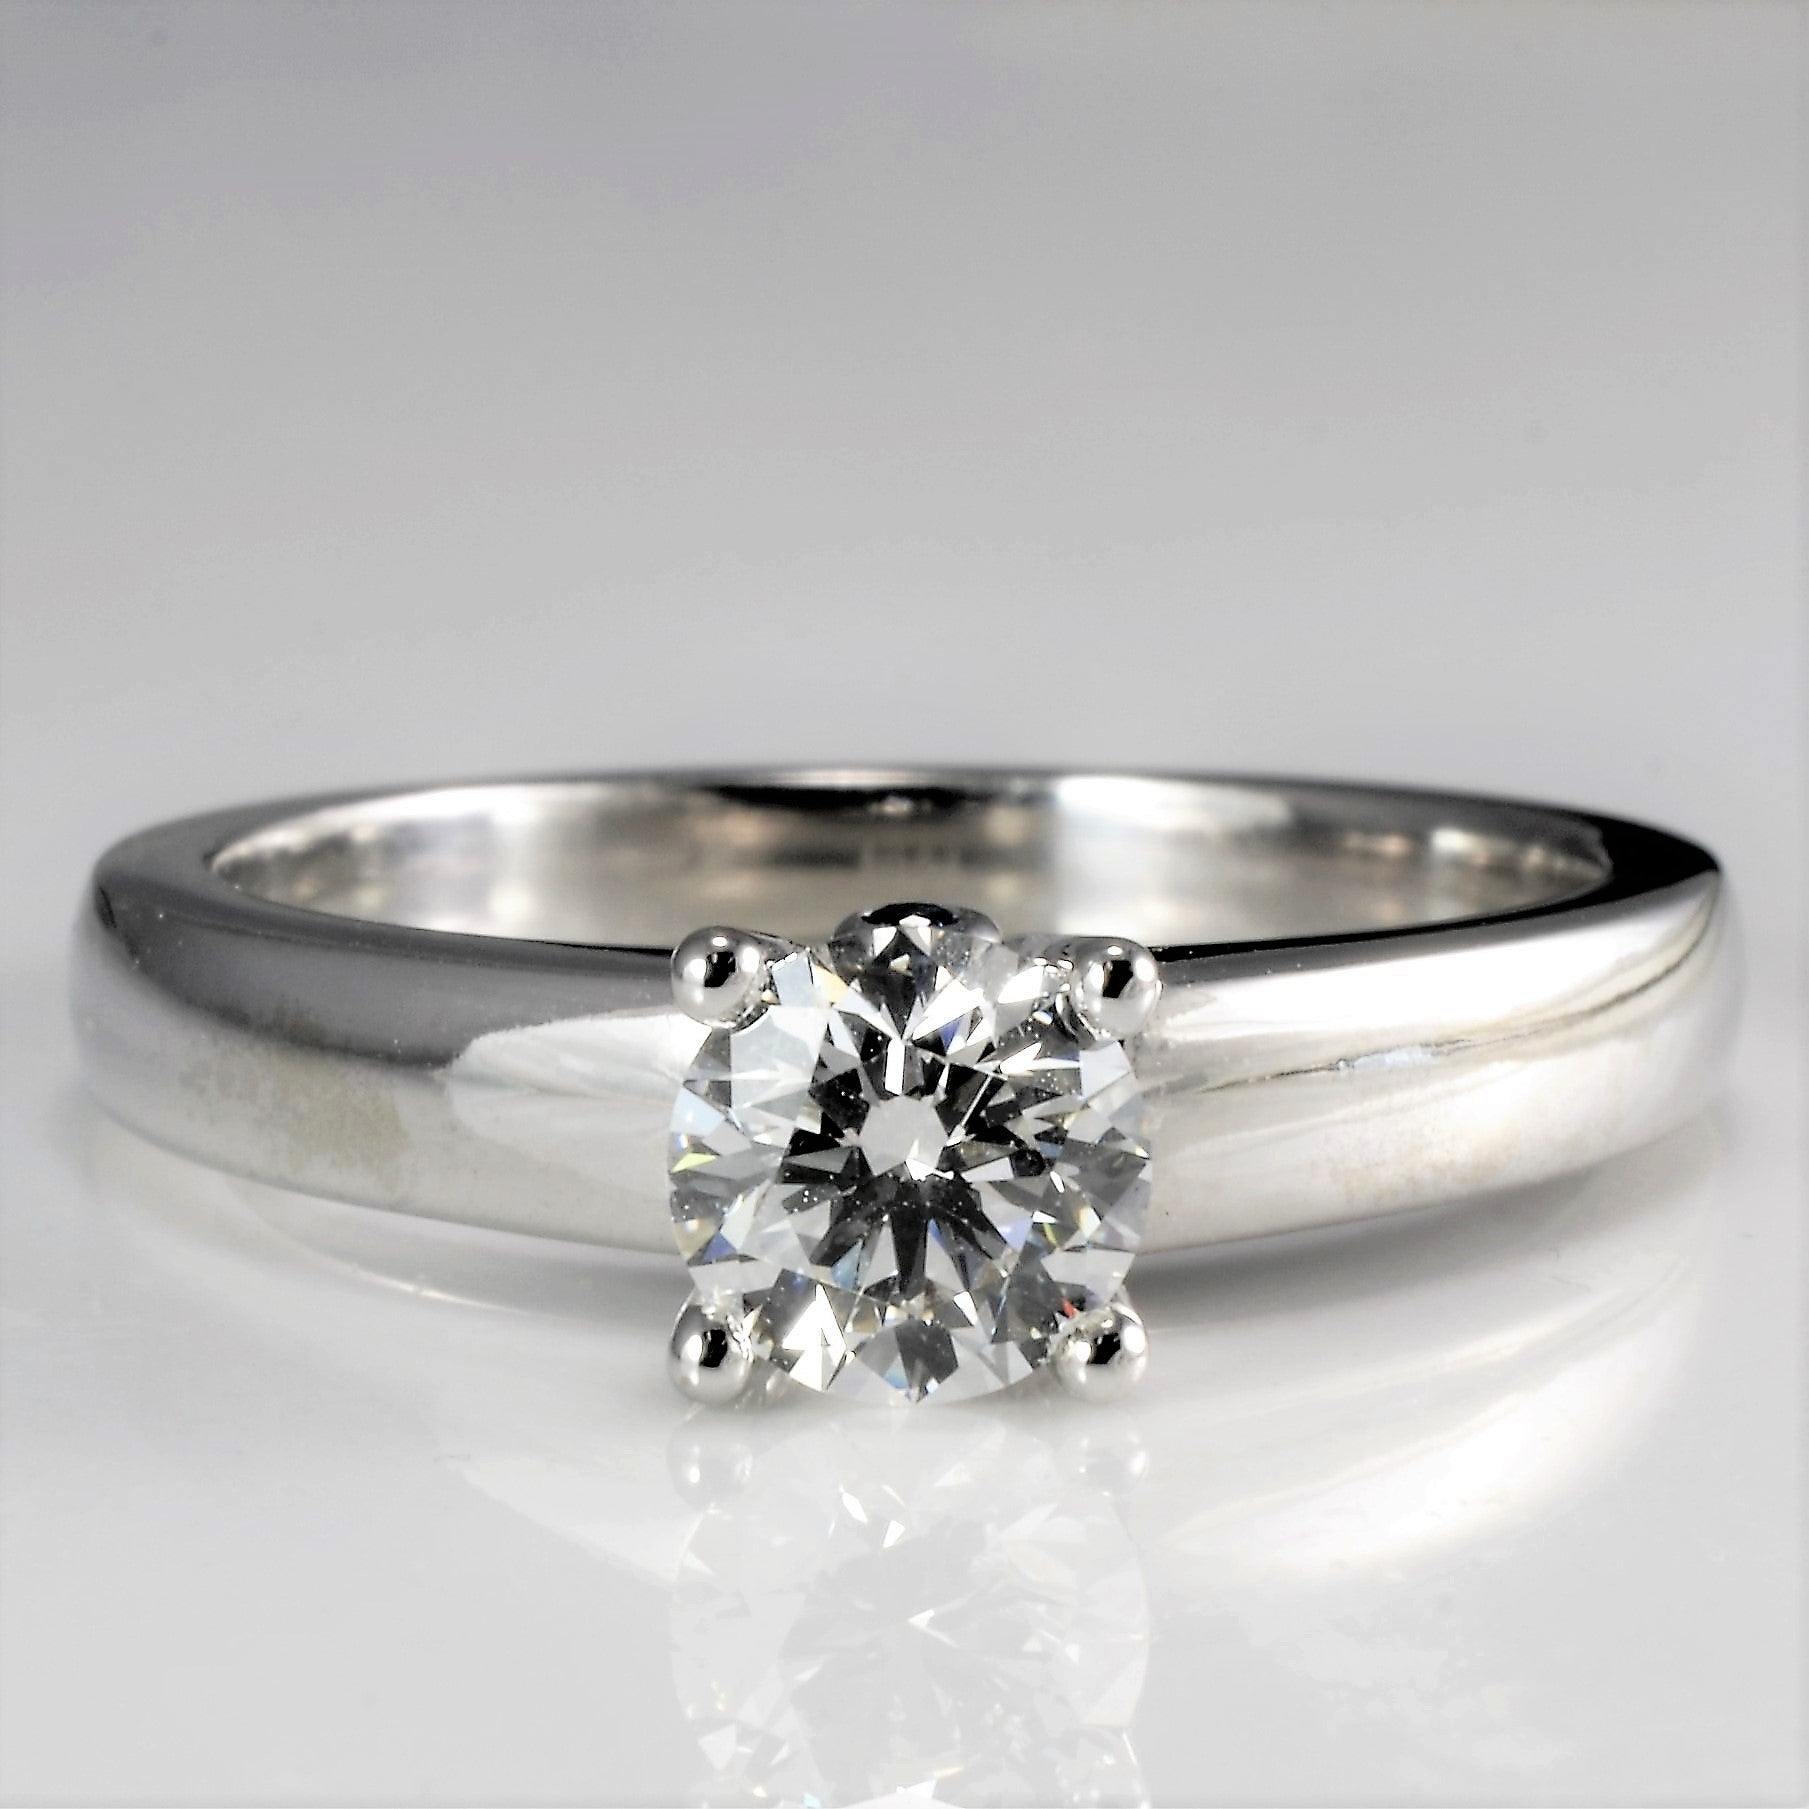 Birks Solitaire Diamond Engagement Ring | 0.70 ct, SZ 8 |